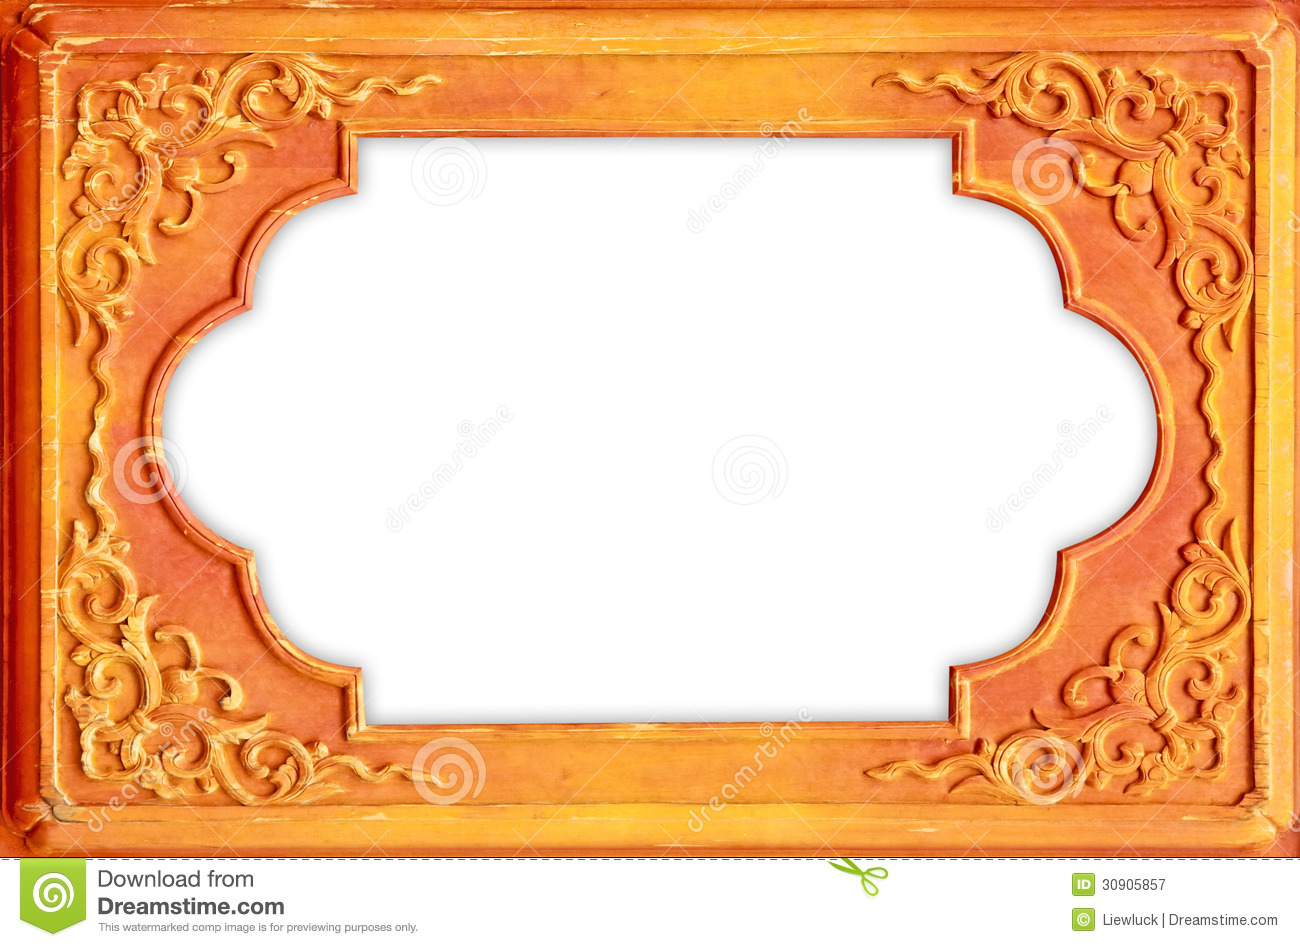 Design On The Wooden Frame Stock Image Of Decorate